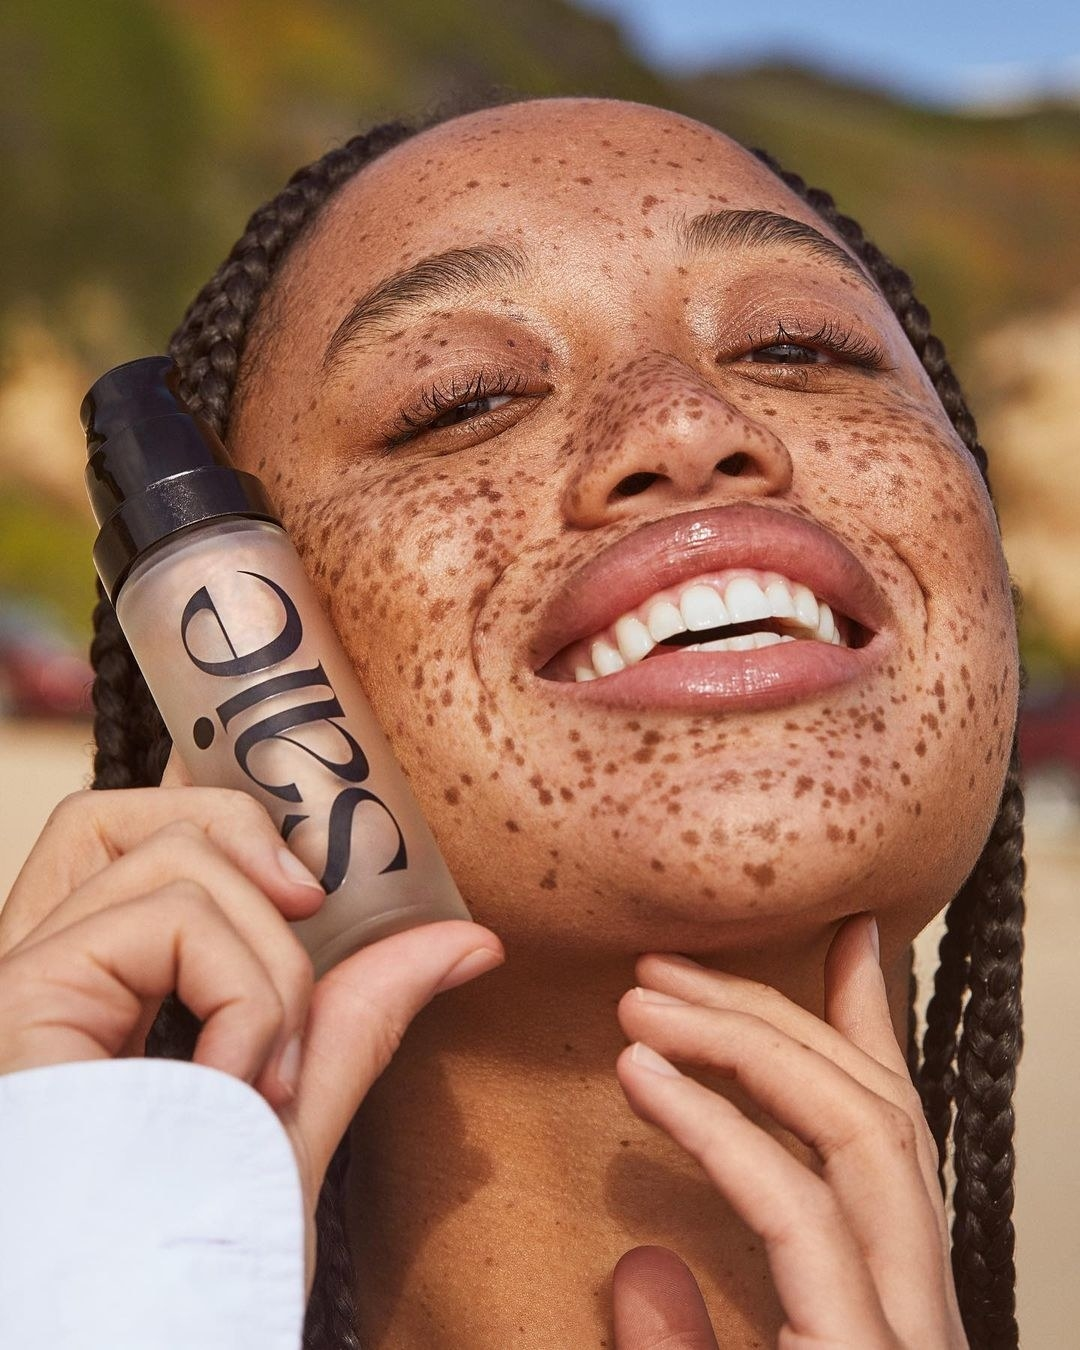 A smiling person holding a bottle of the gel highlighter next to their face; they are glowing and happy